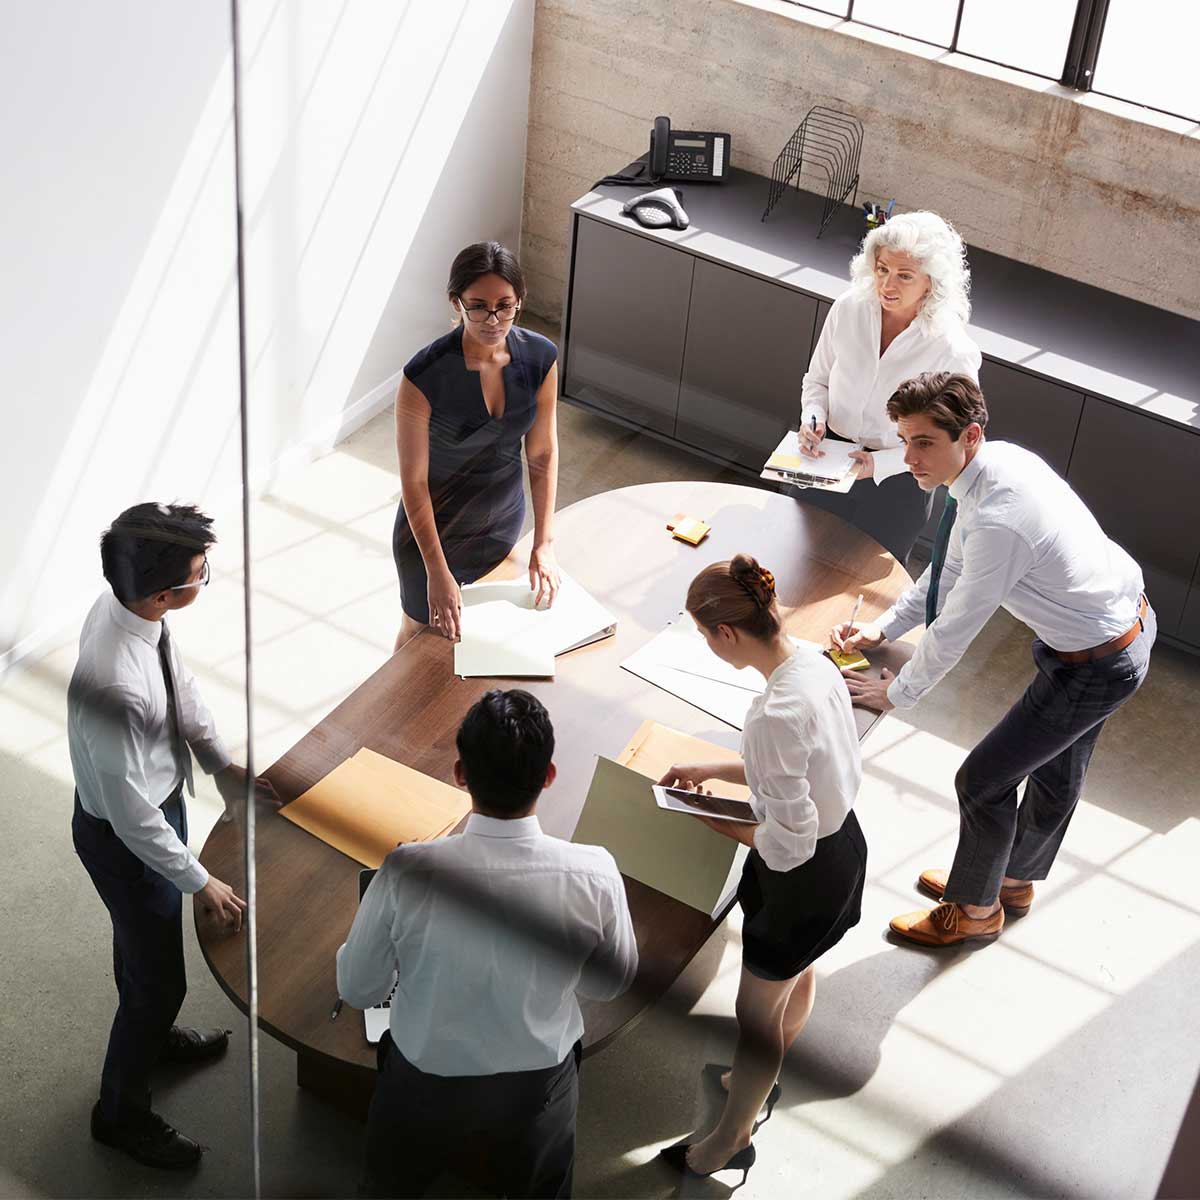 Employees gathered around a conference table discussing print documents